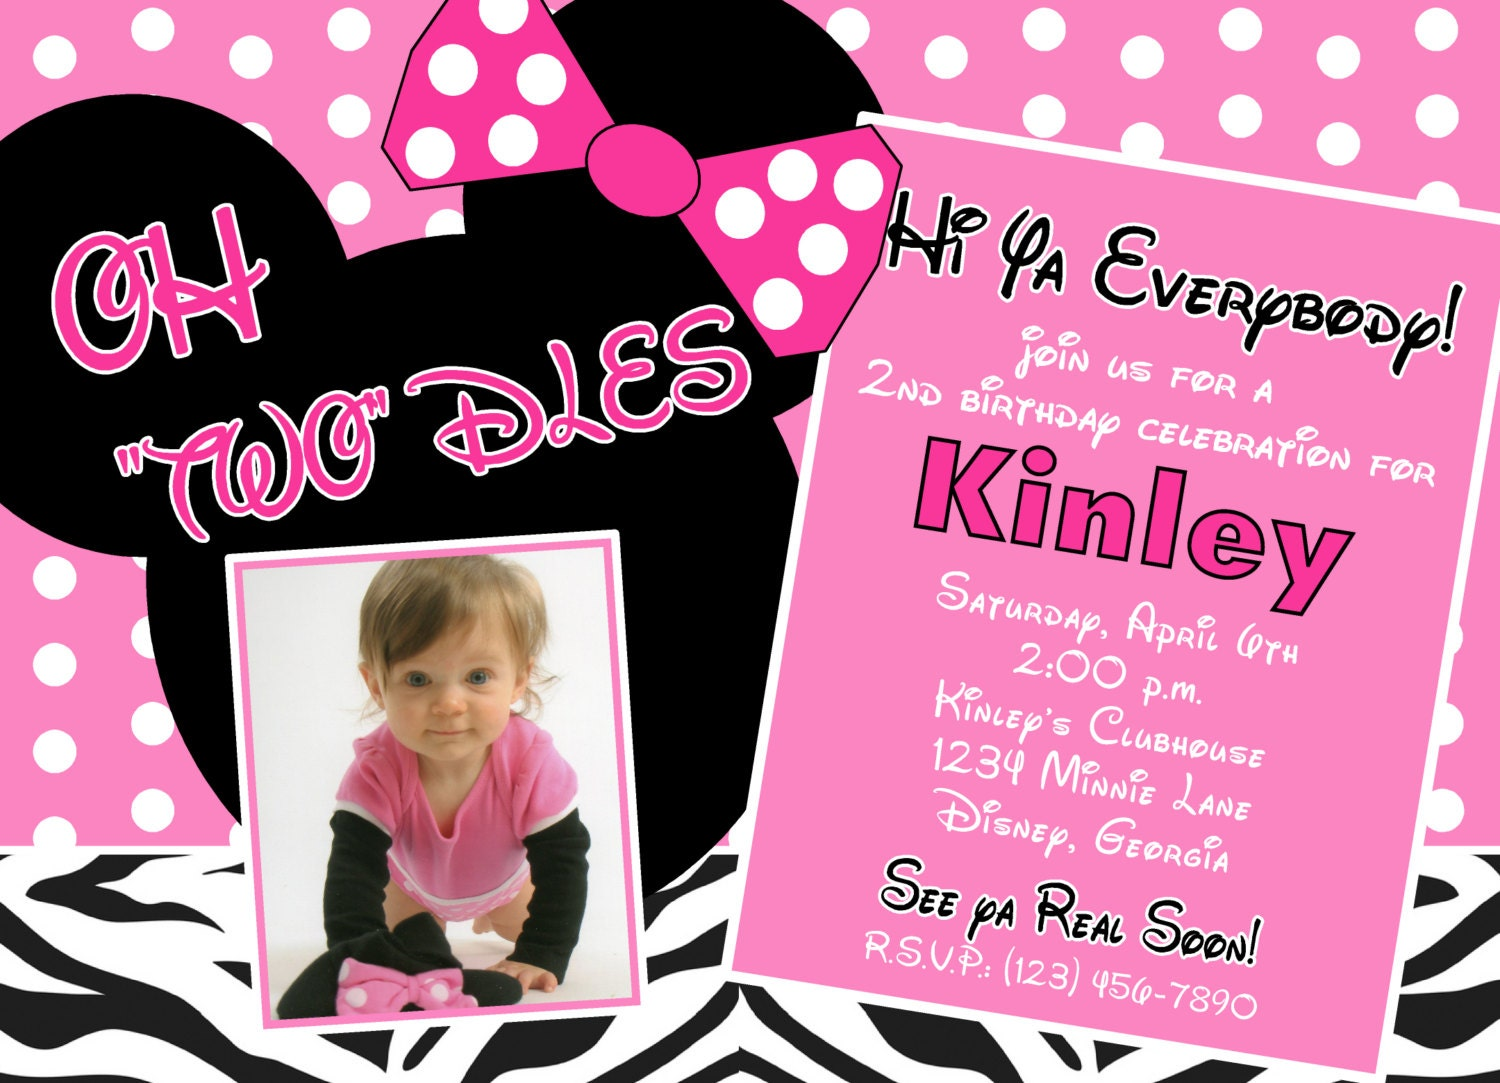 Customized Minnie Mouse Invitations with good invitations layout